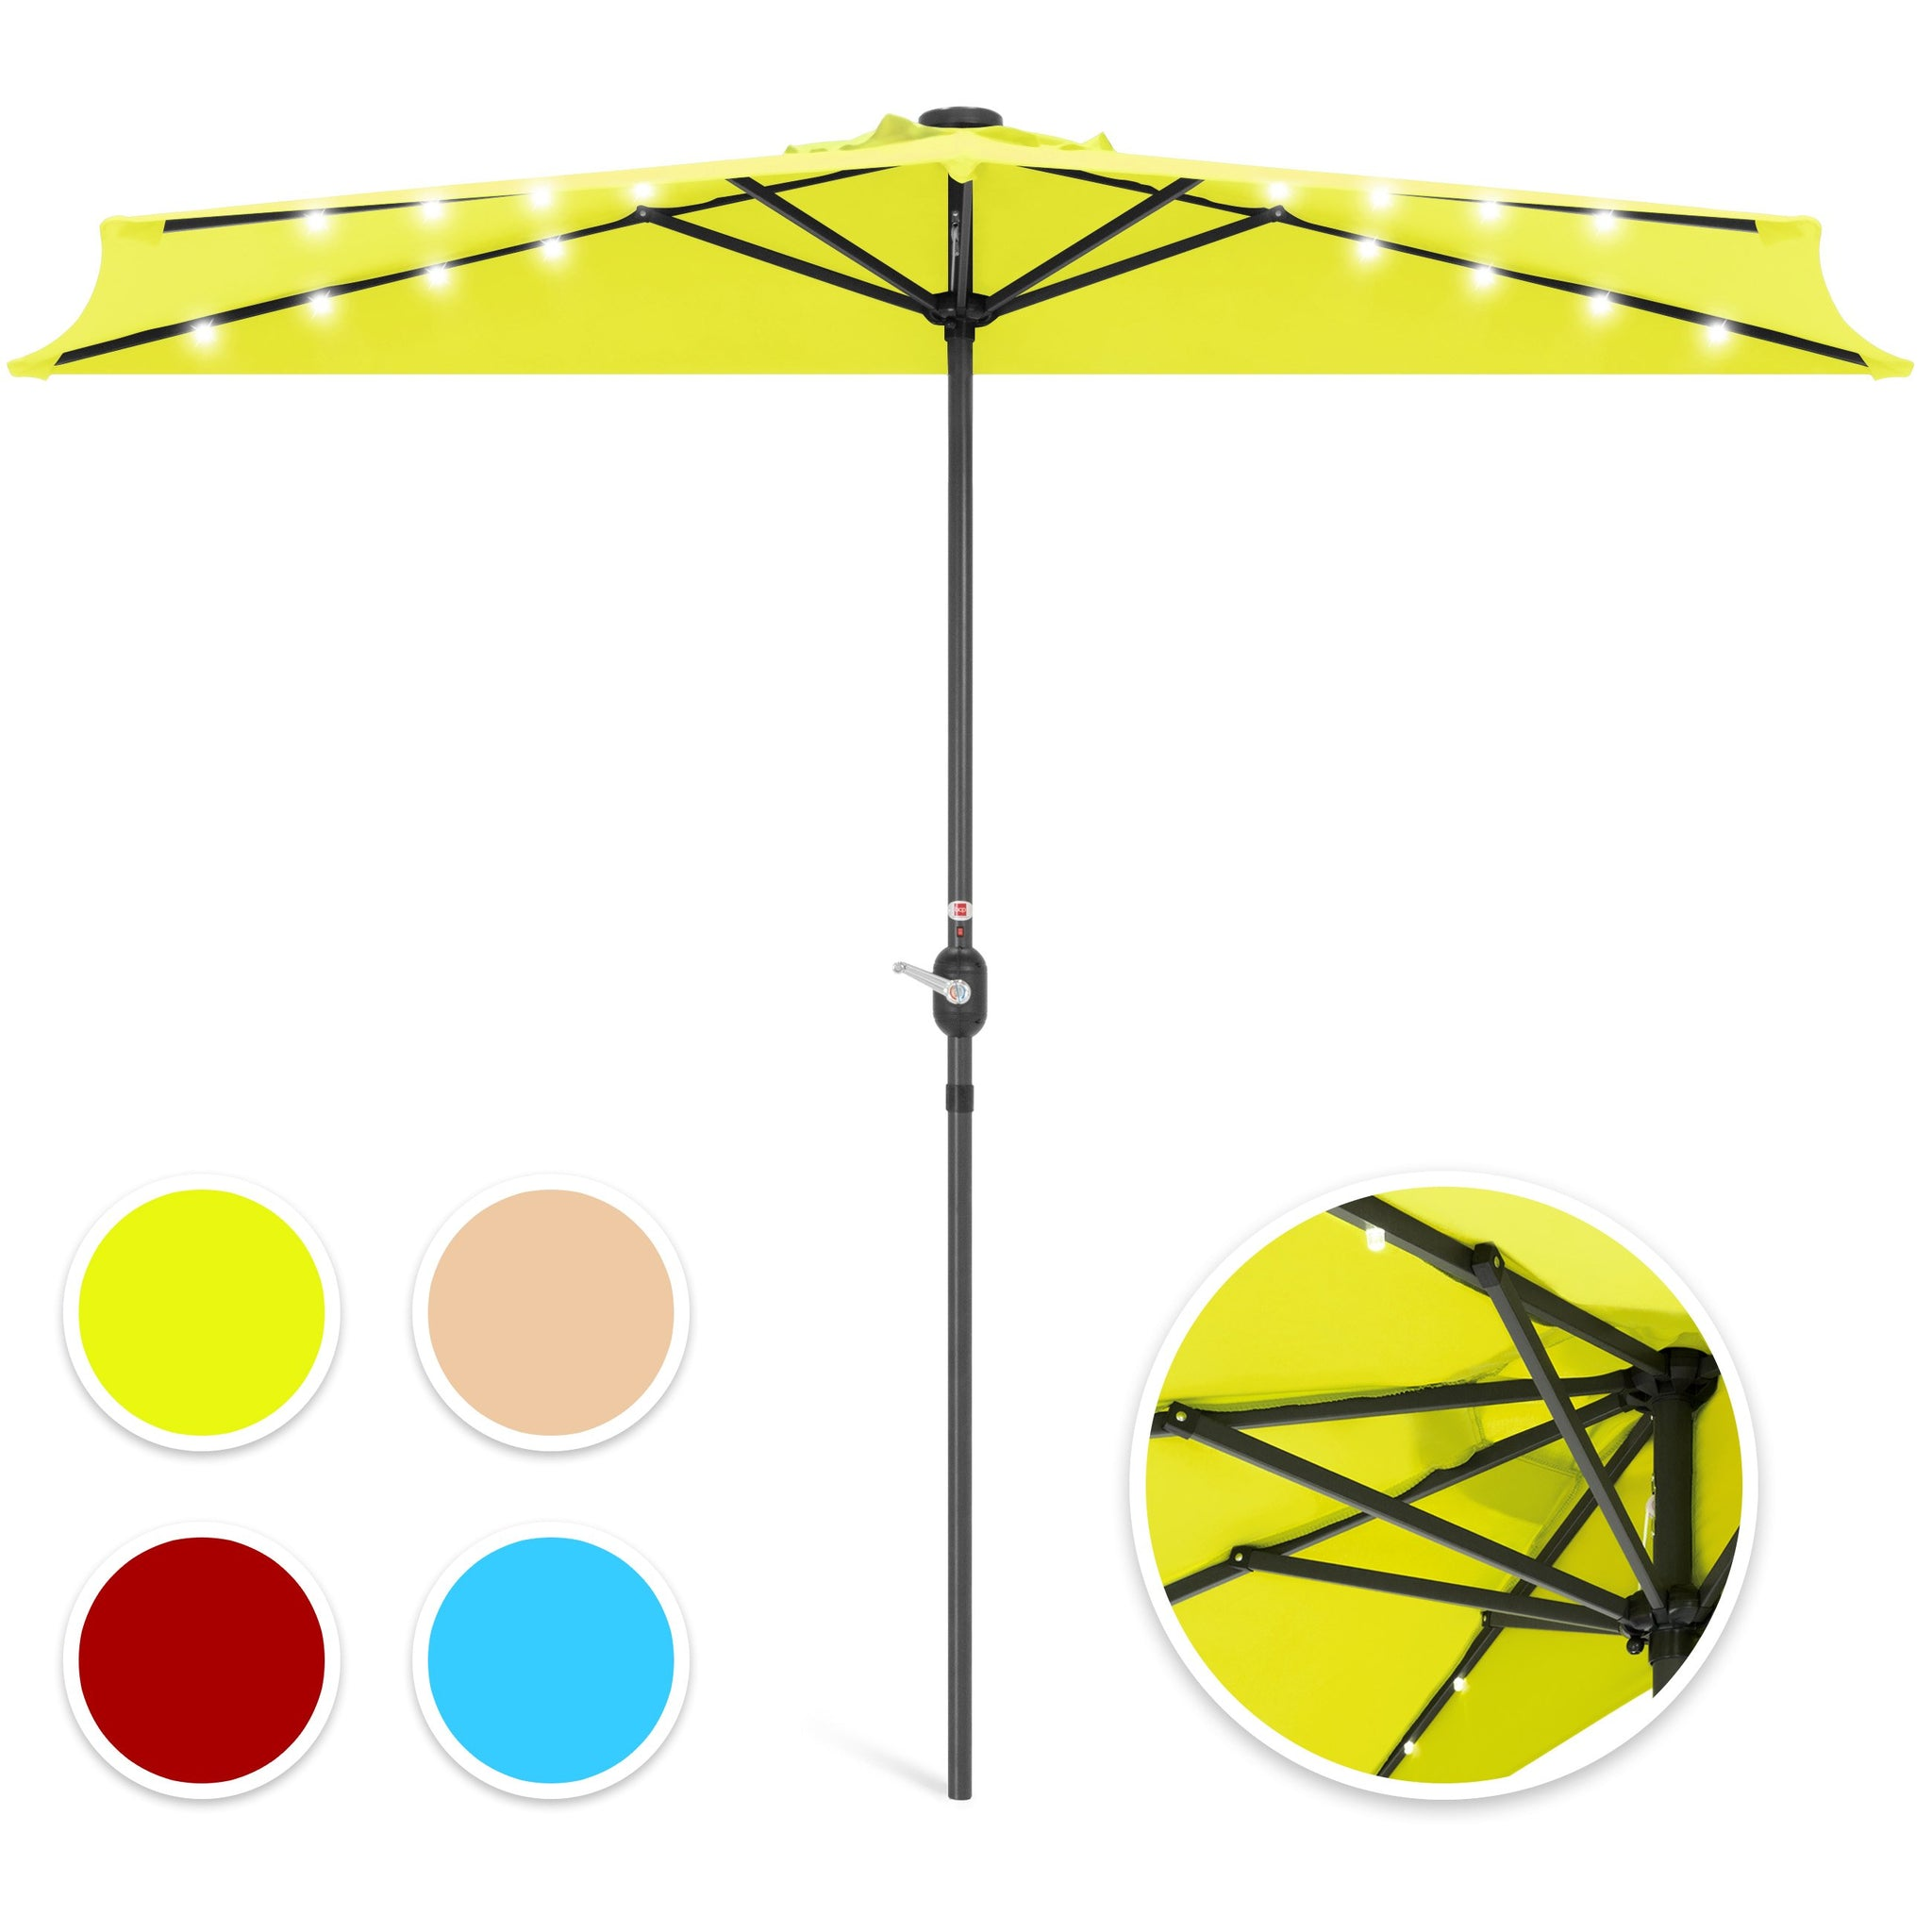 8.5ft Outdoor Solar LED Half Patio Umbrella w/ Easy Crank